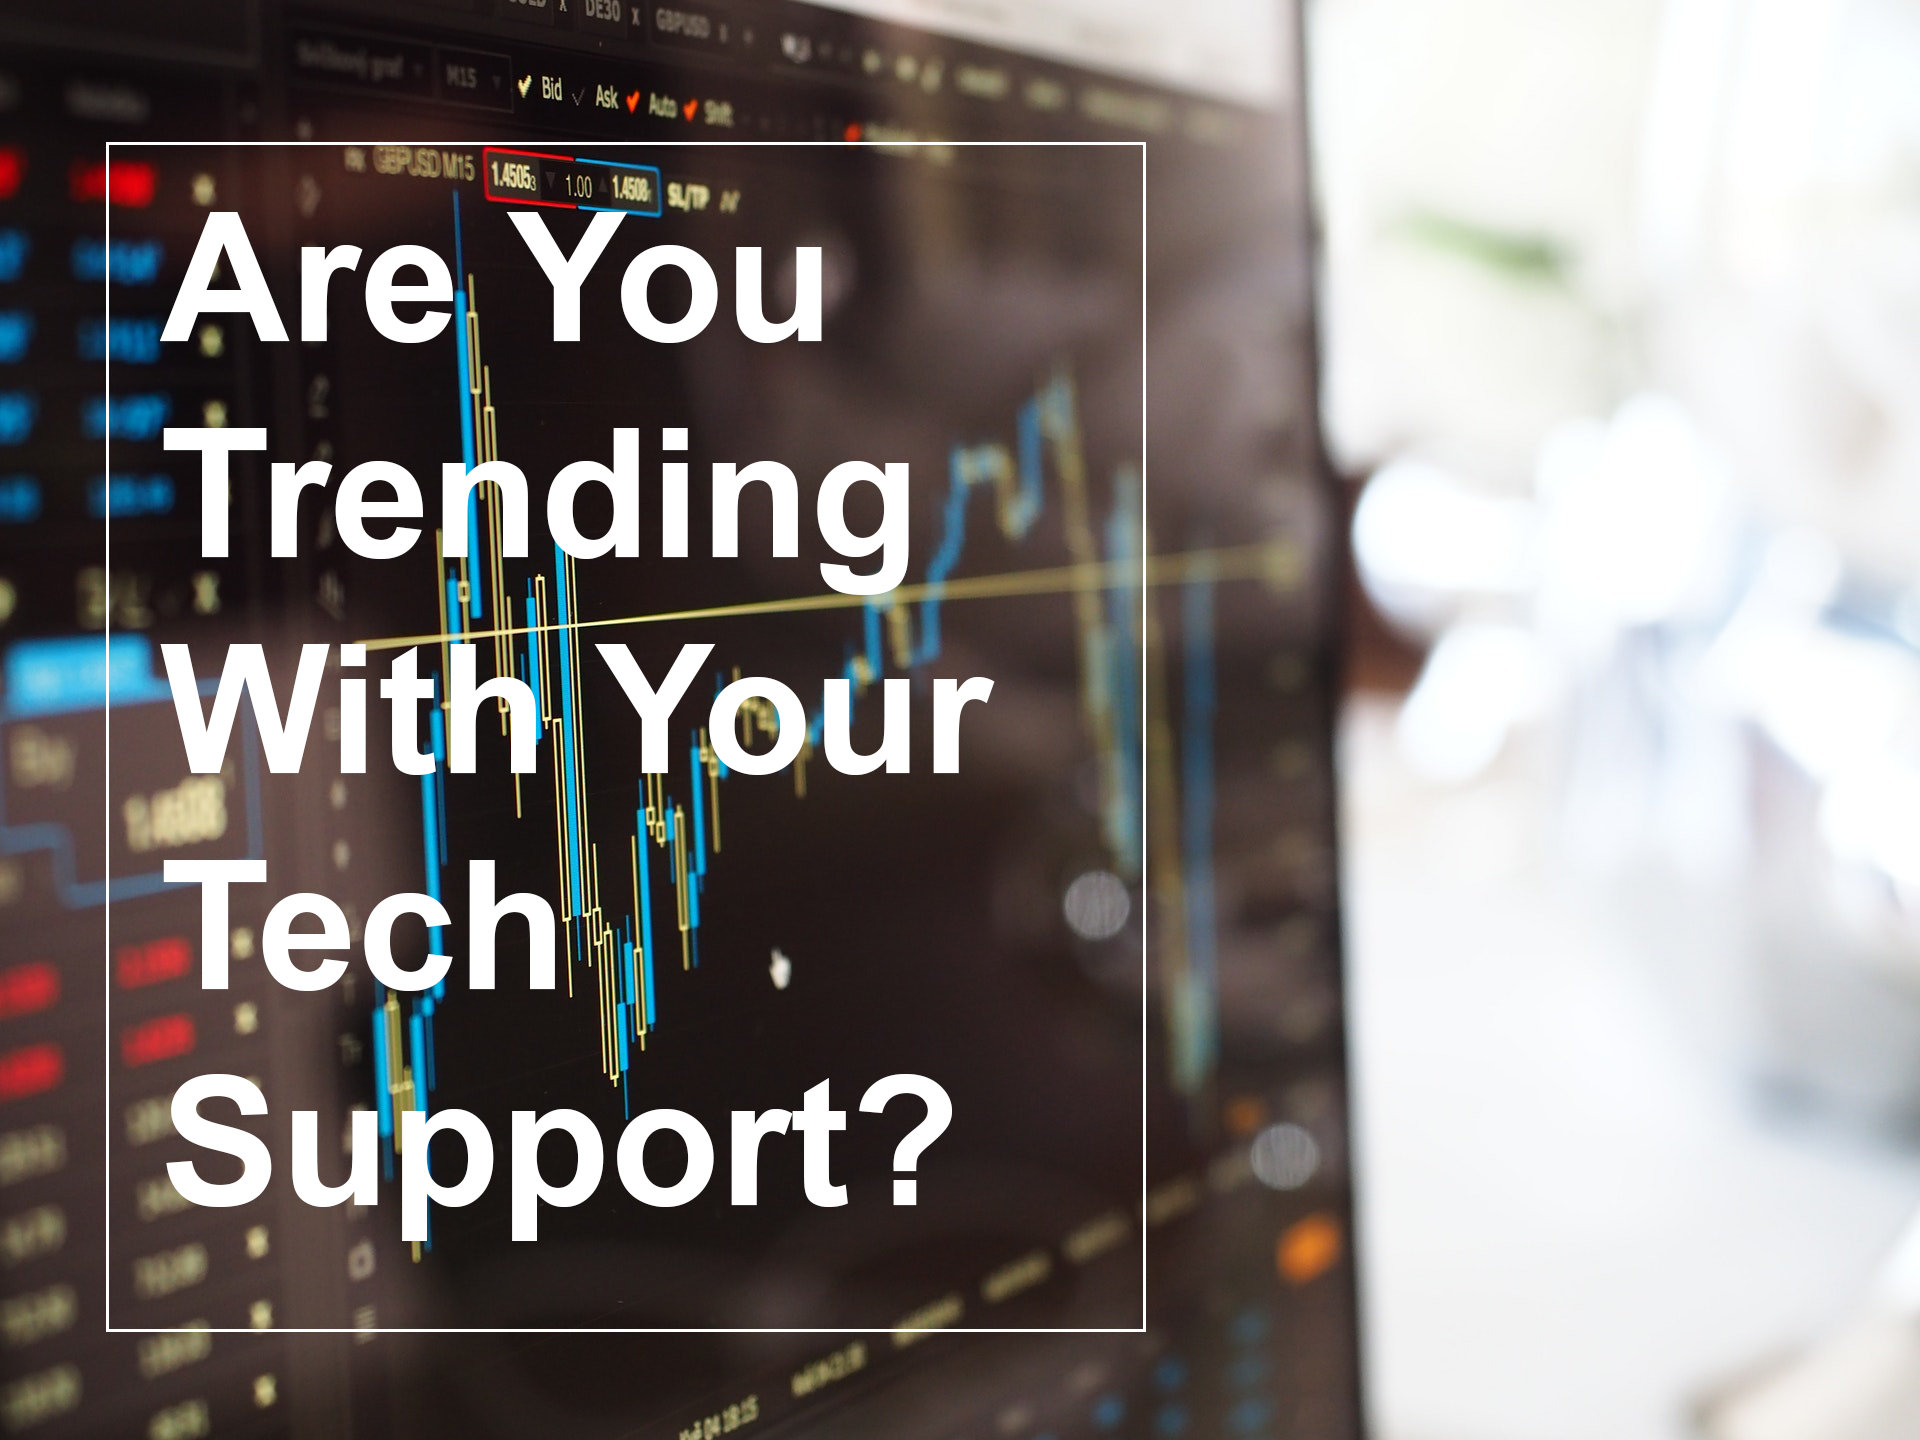 ARE YOU TRENDING WITH YOUR TECH SUPPORT?